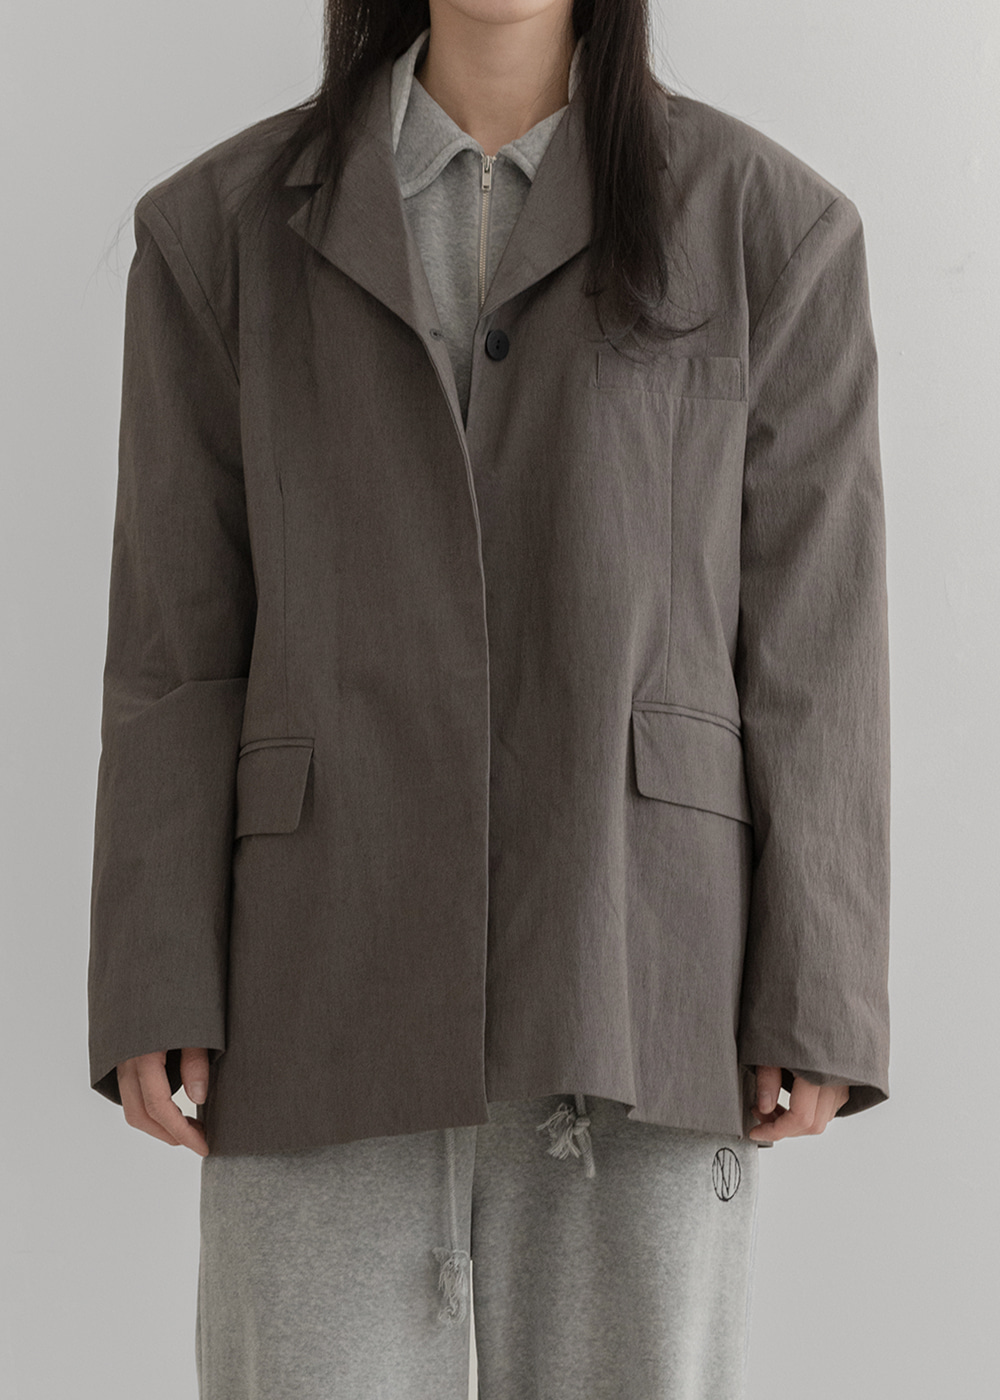 [TEXTURE] One button overfit jacket